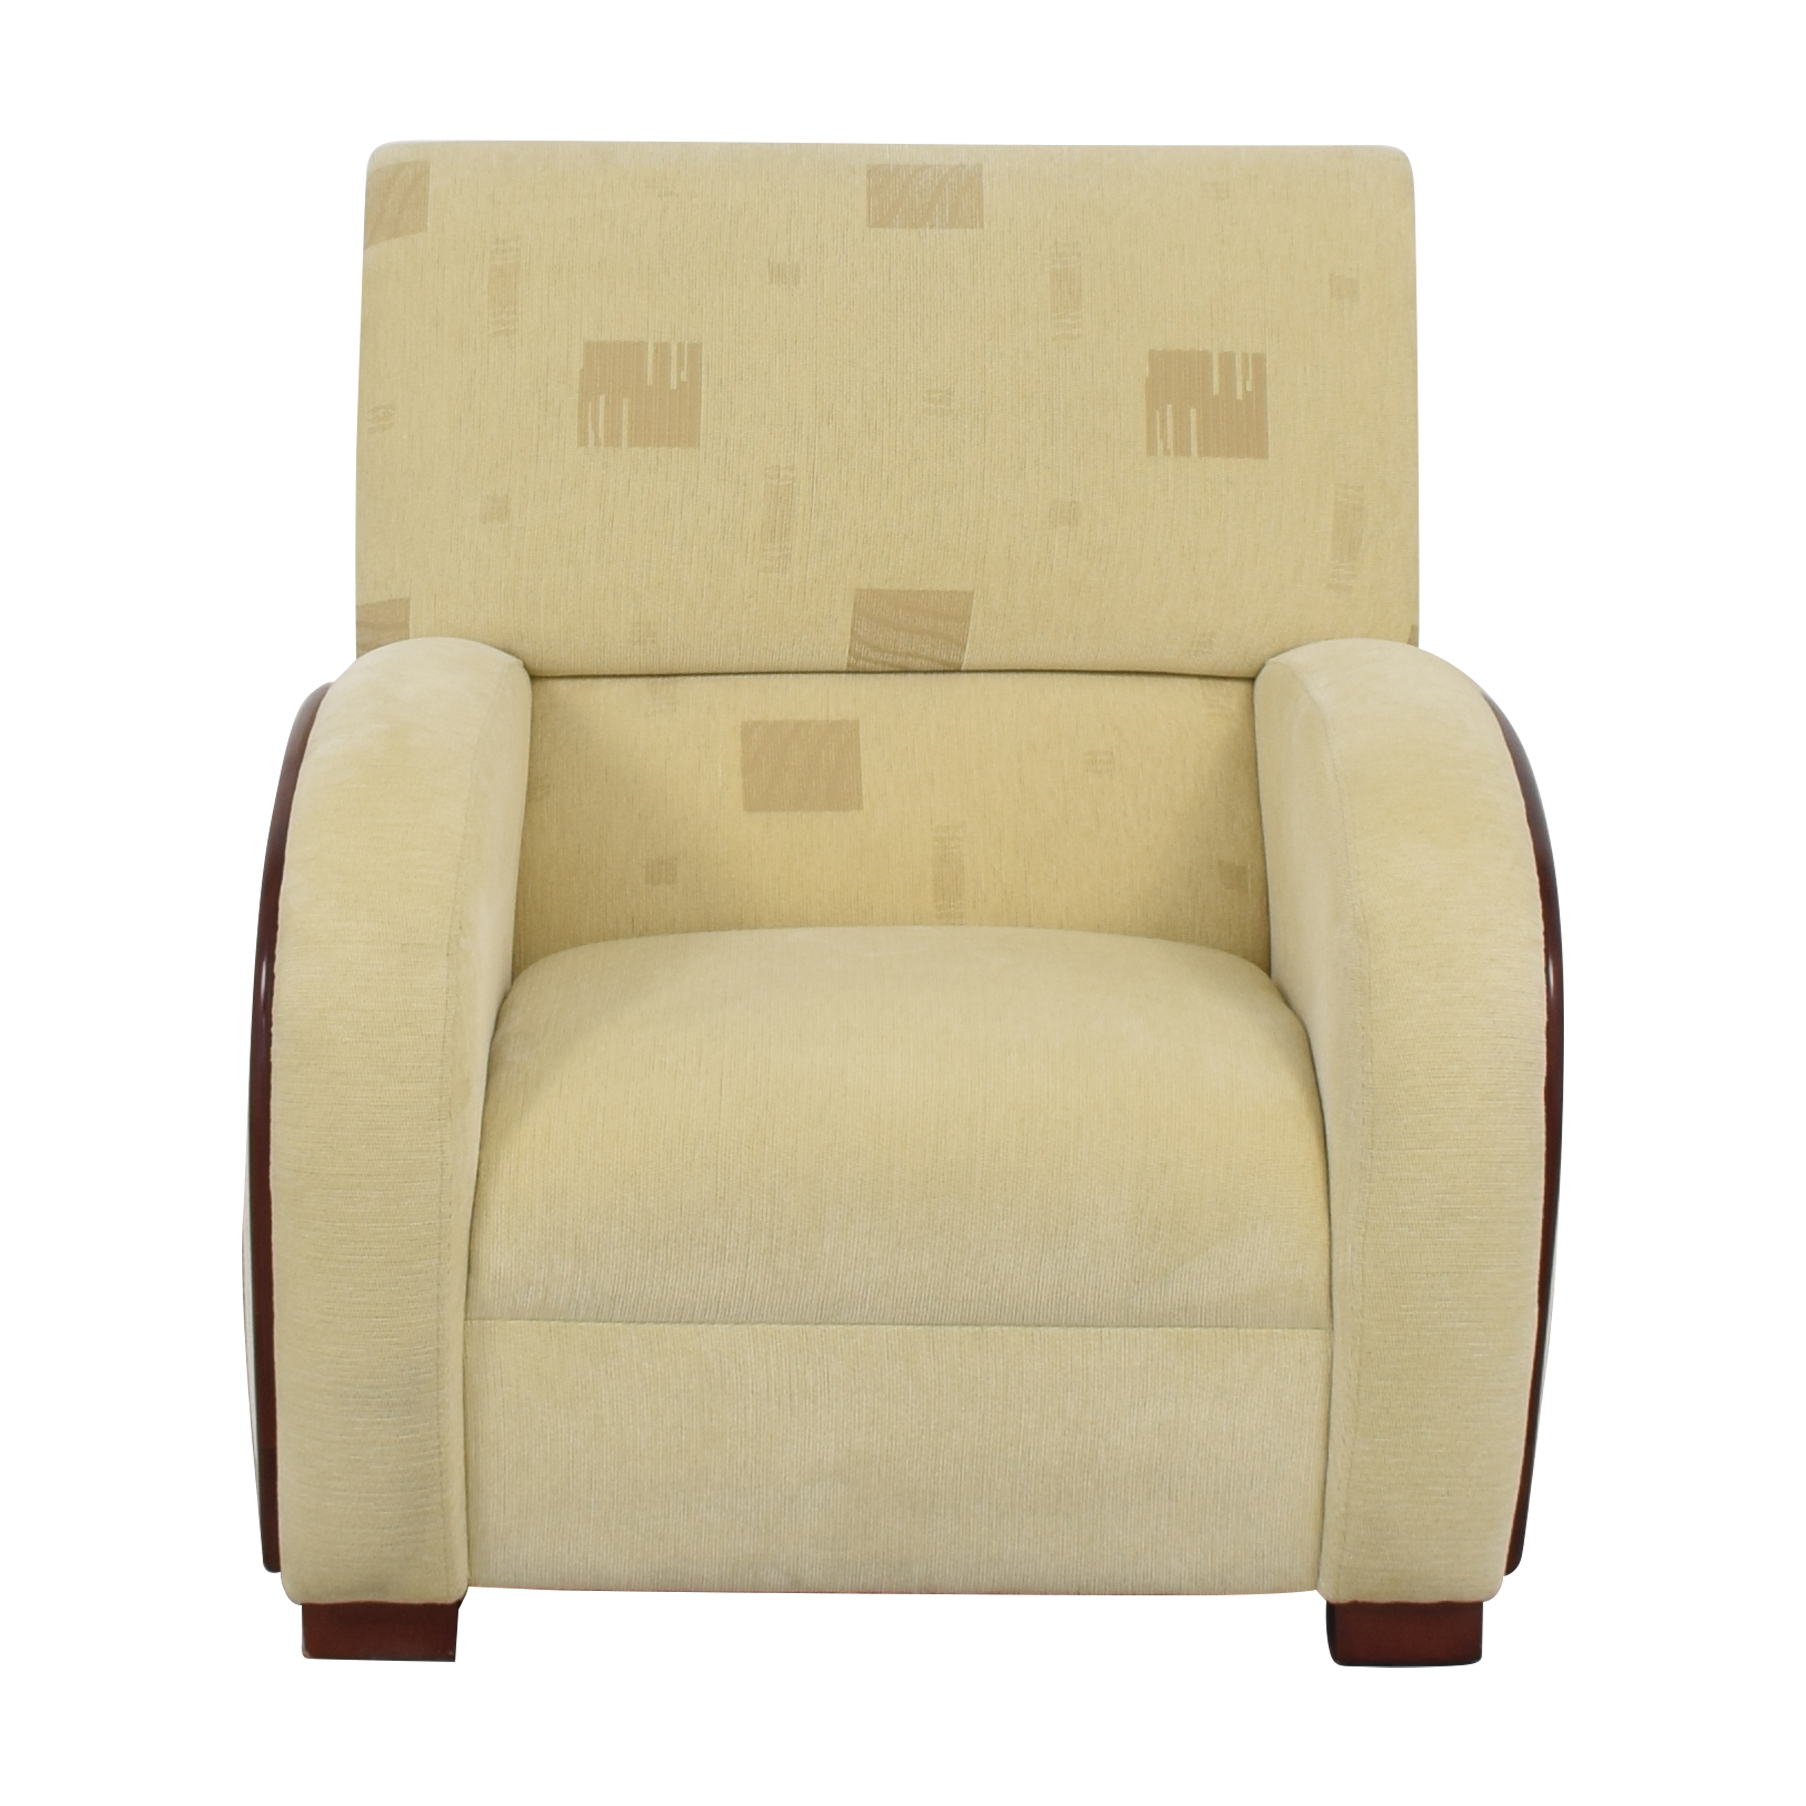 Vintage Style Accent Chair used